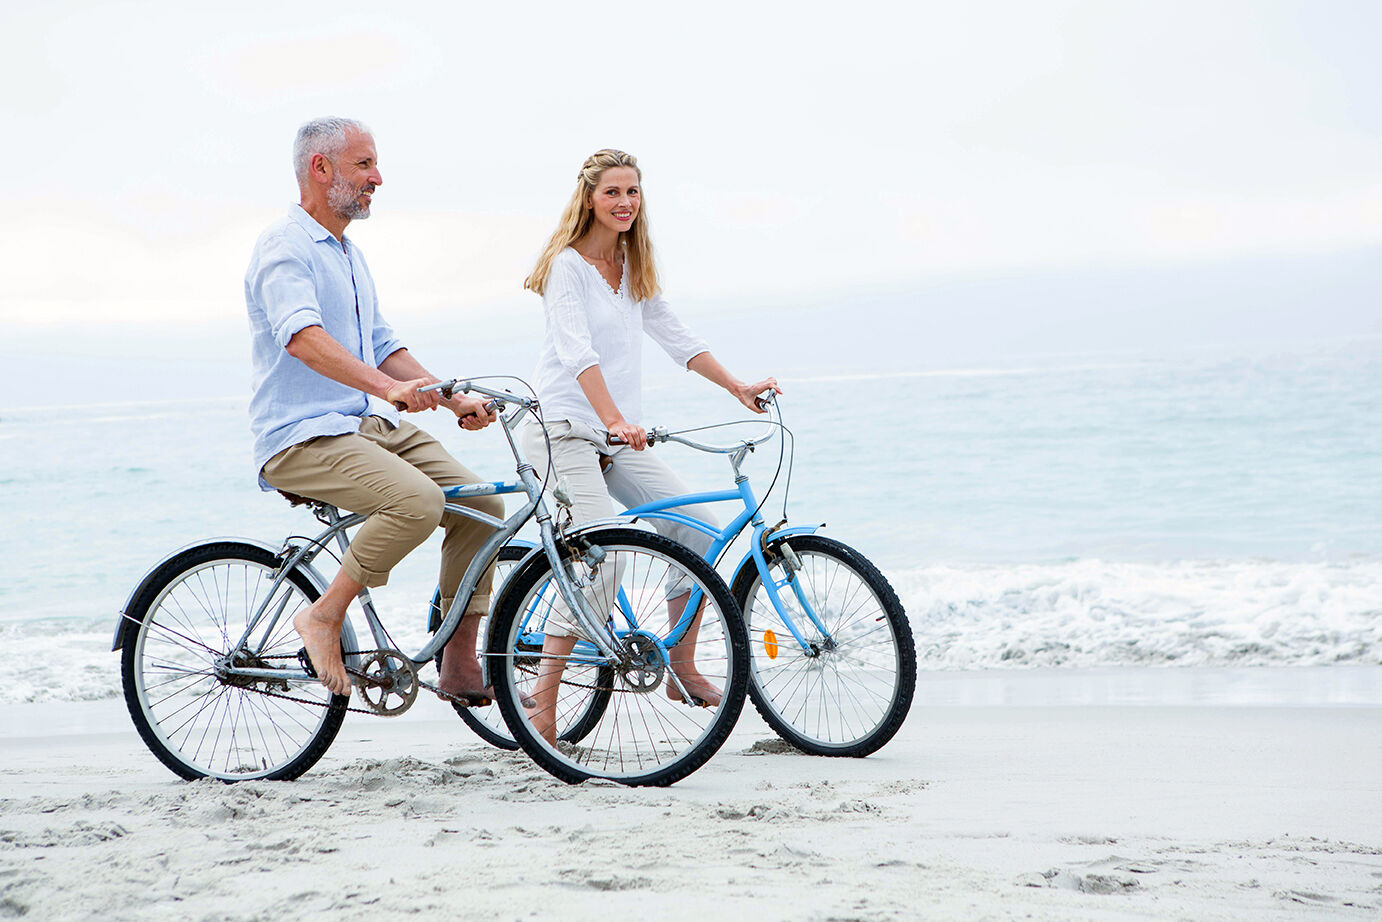 Older couple bicycling on the beach next to water.